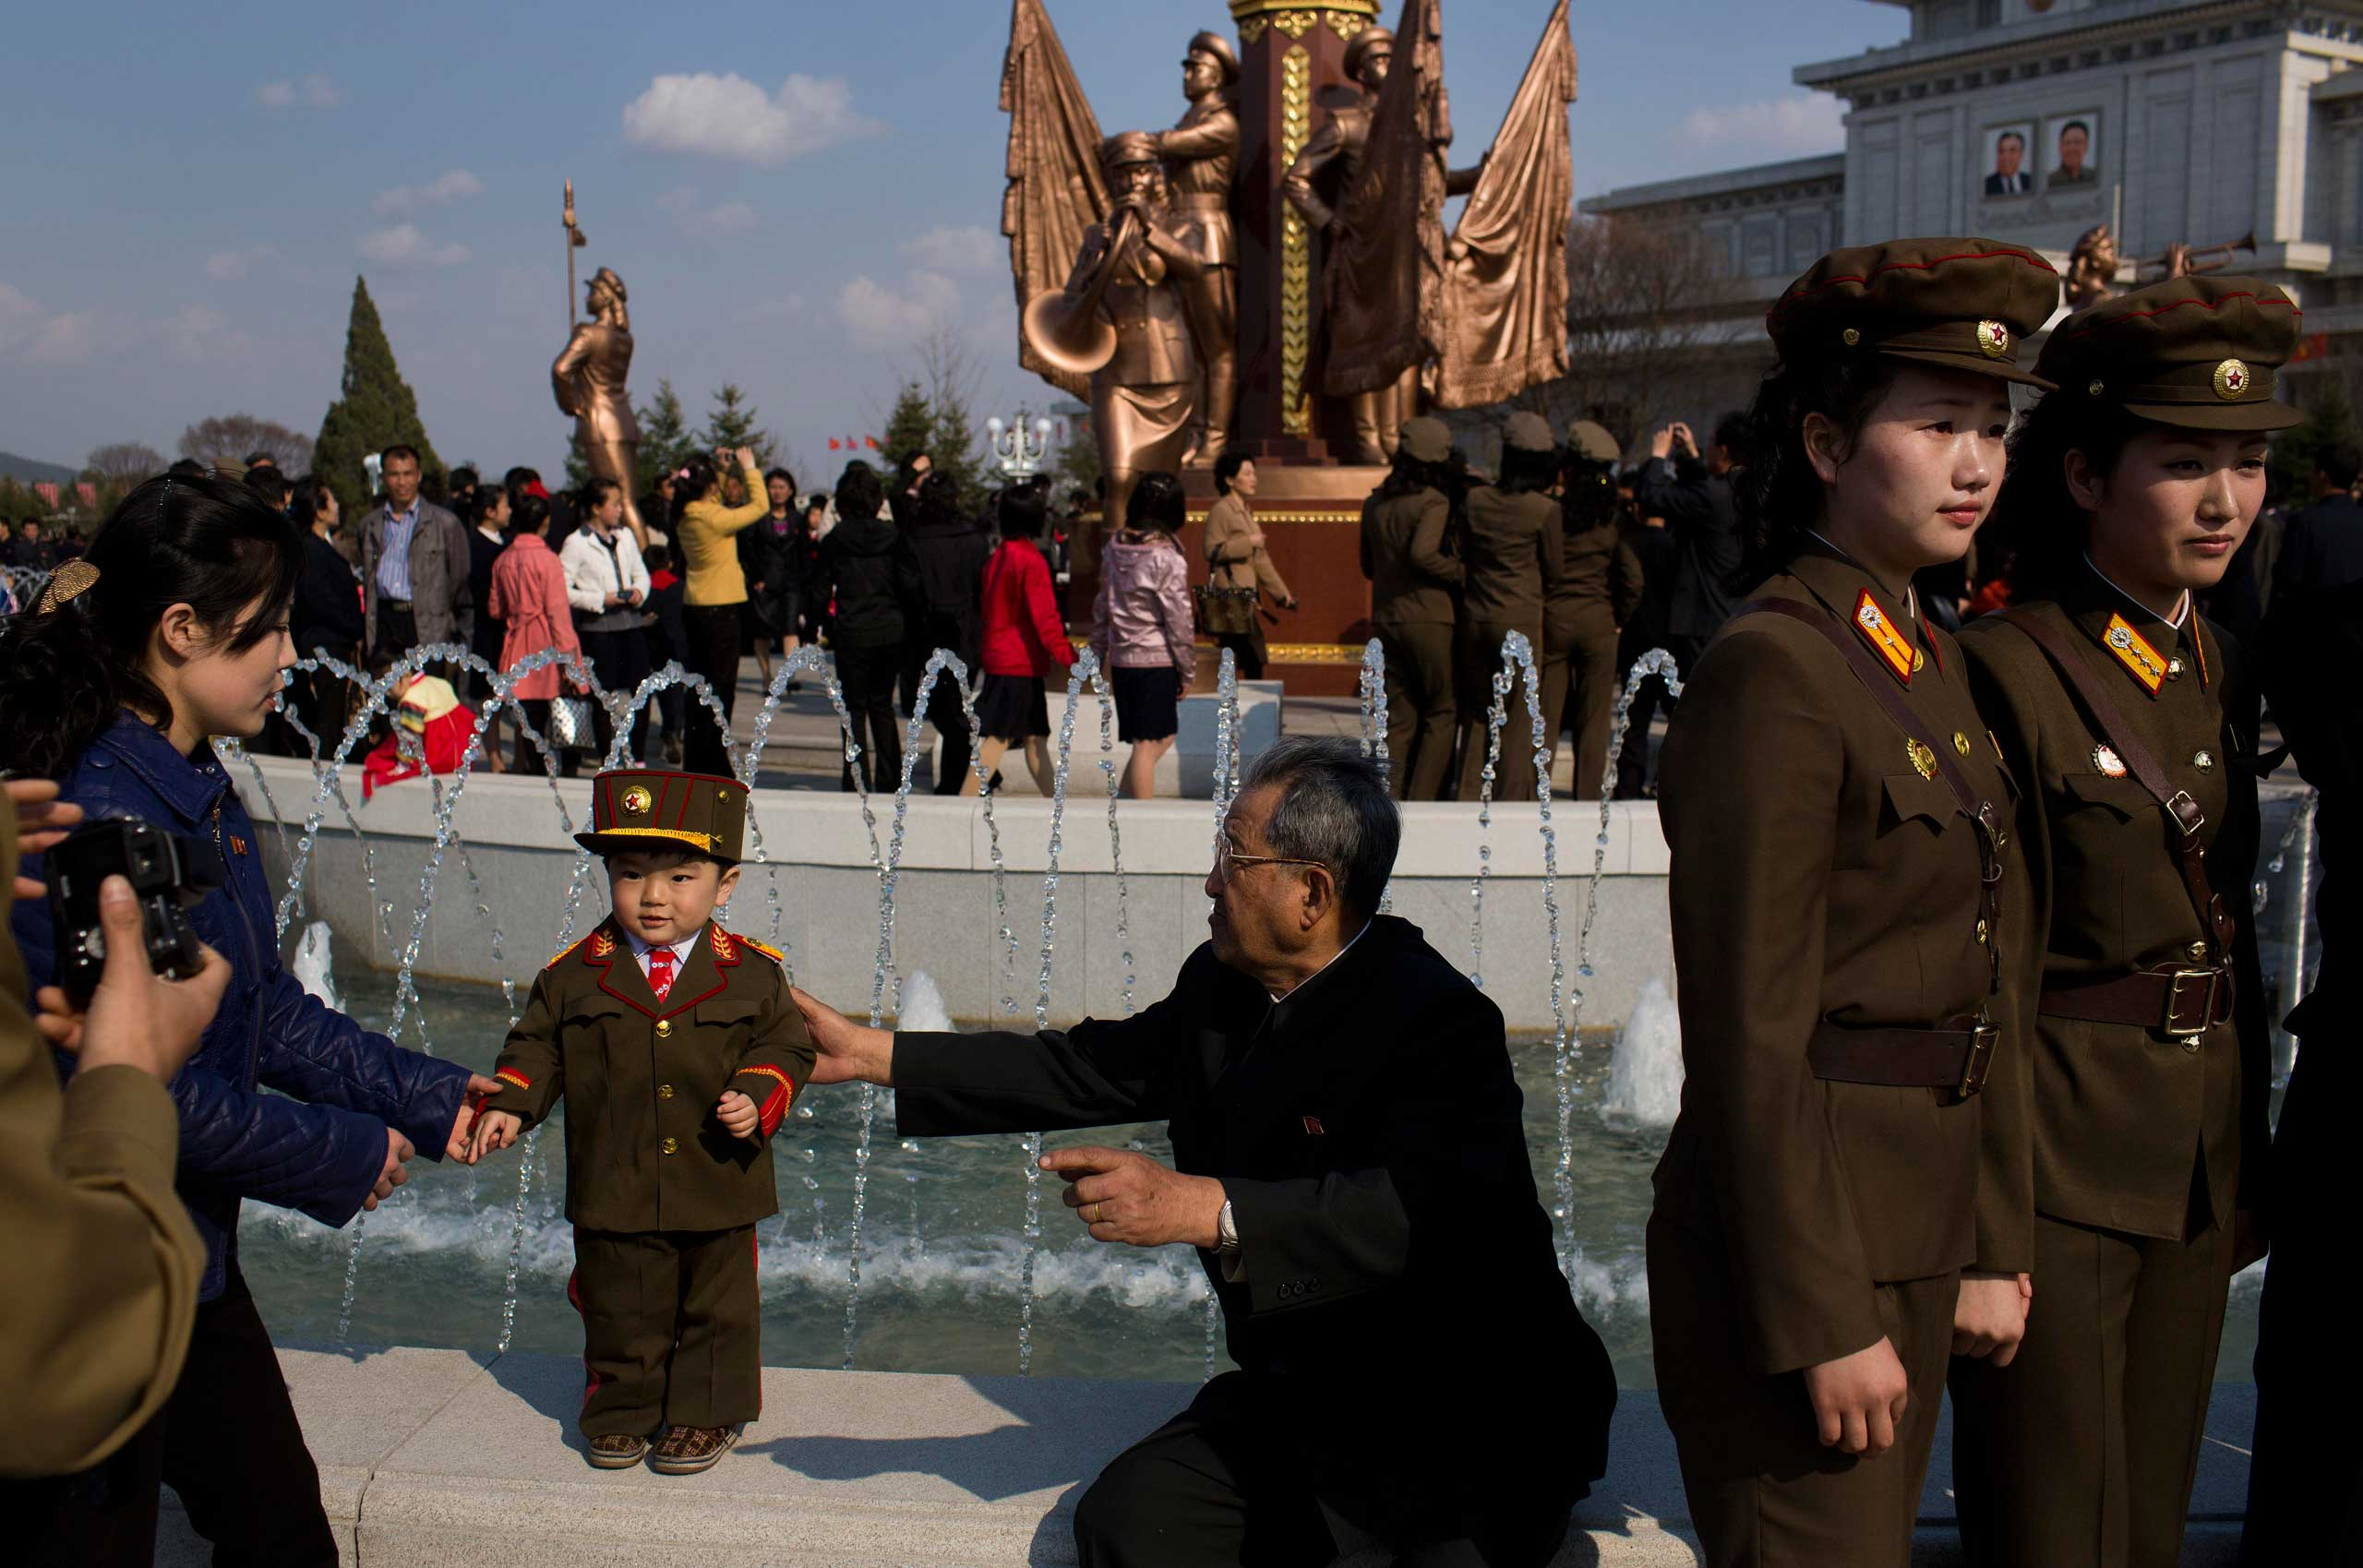 April 25, 2013. North Korean soldiers and civilians pose for souvenir photos in front of a fountain as they tour the grounds of Kumsusan Palace of the Sun, the mausoleum where the bodies of the late leaders Kim Il Sung and Kim Jong Il lie embalmed, in Pyongyang, North Korea.